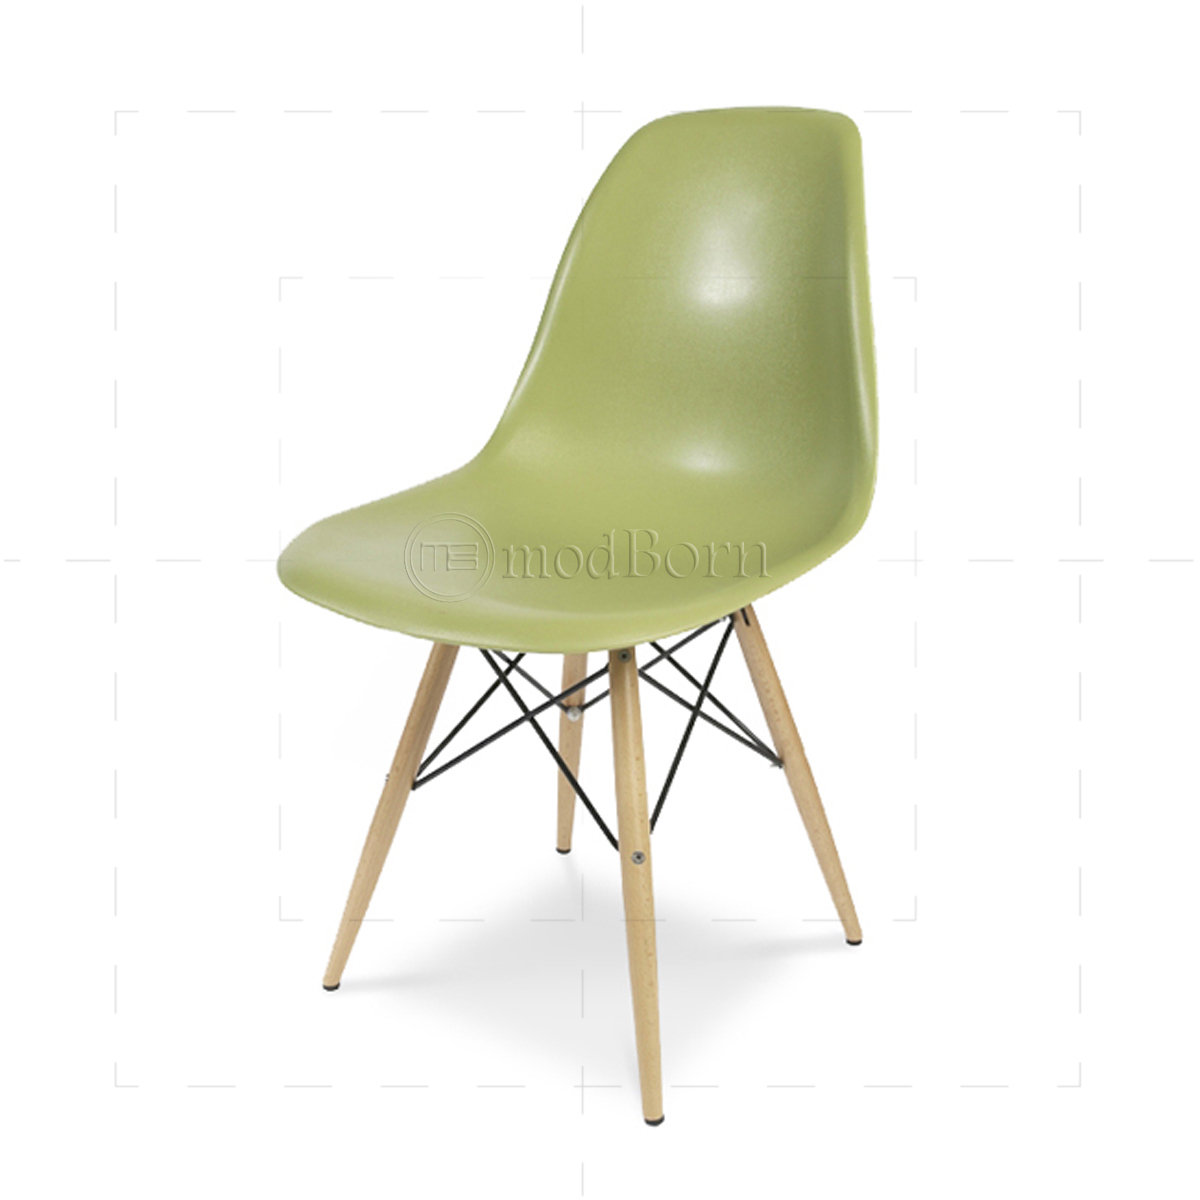 eames style dining dsw chair green replica. Black Bedroom Furniture Sets. Home Design Ideas